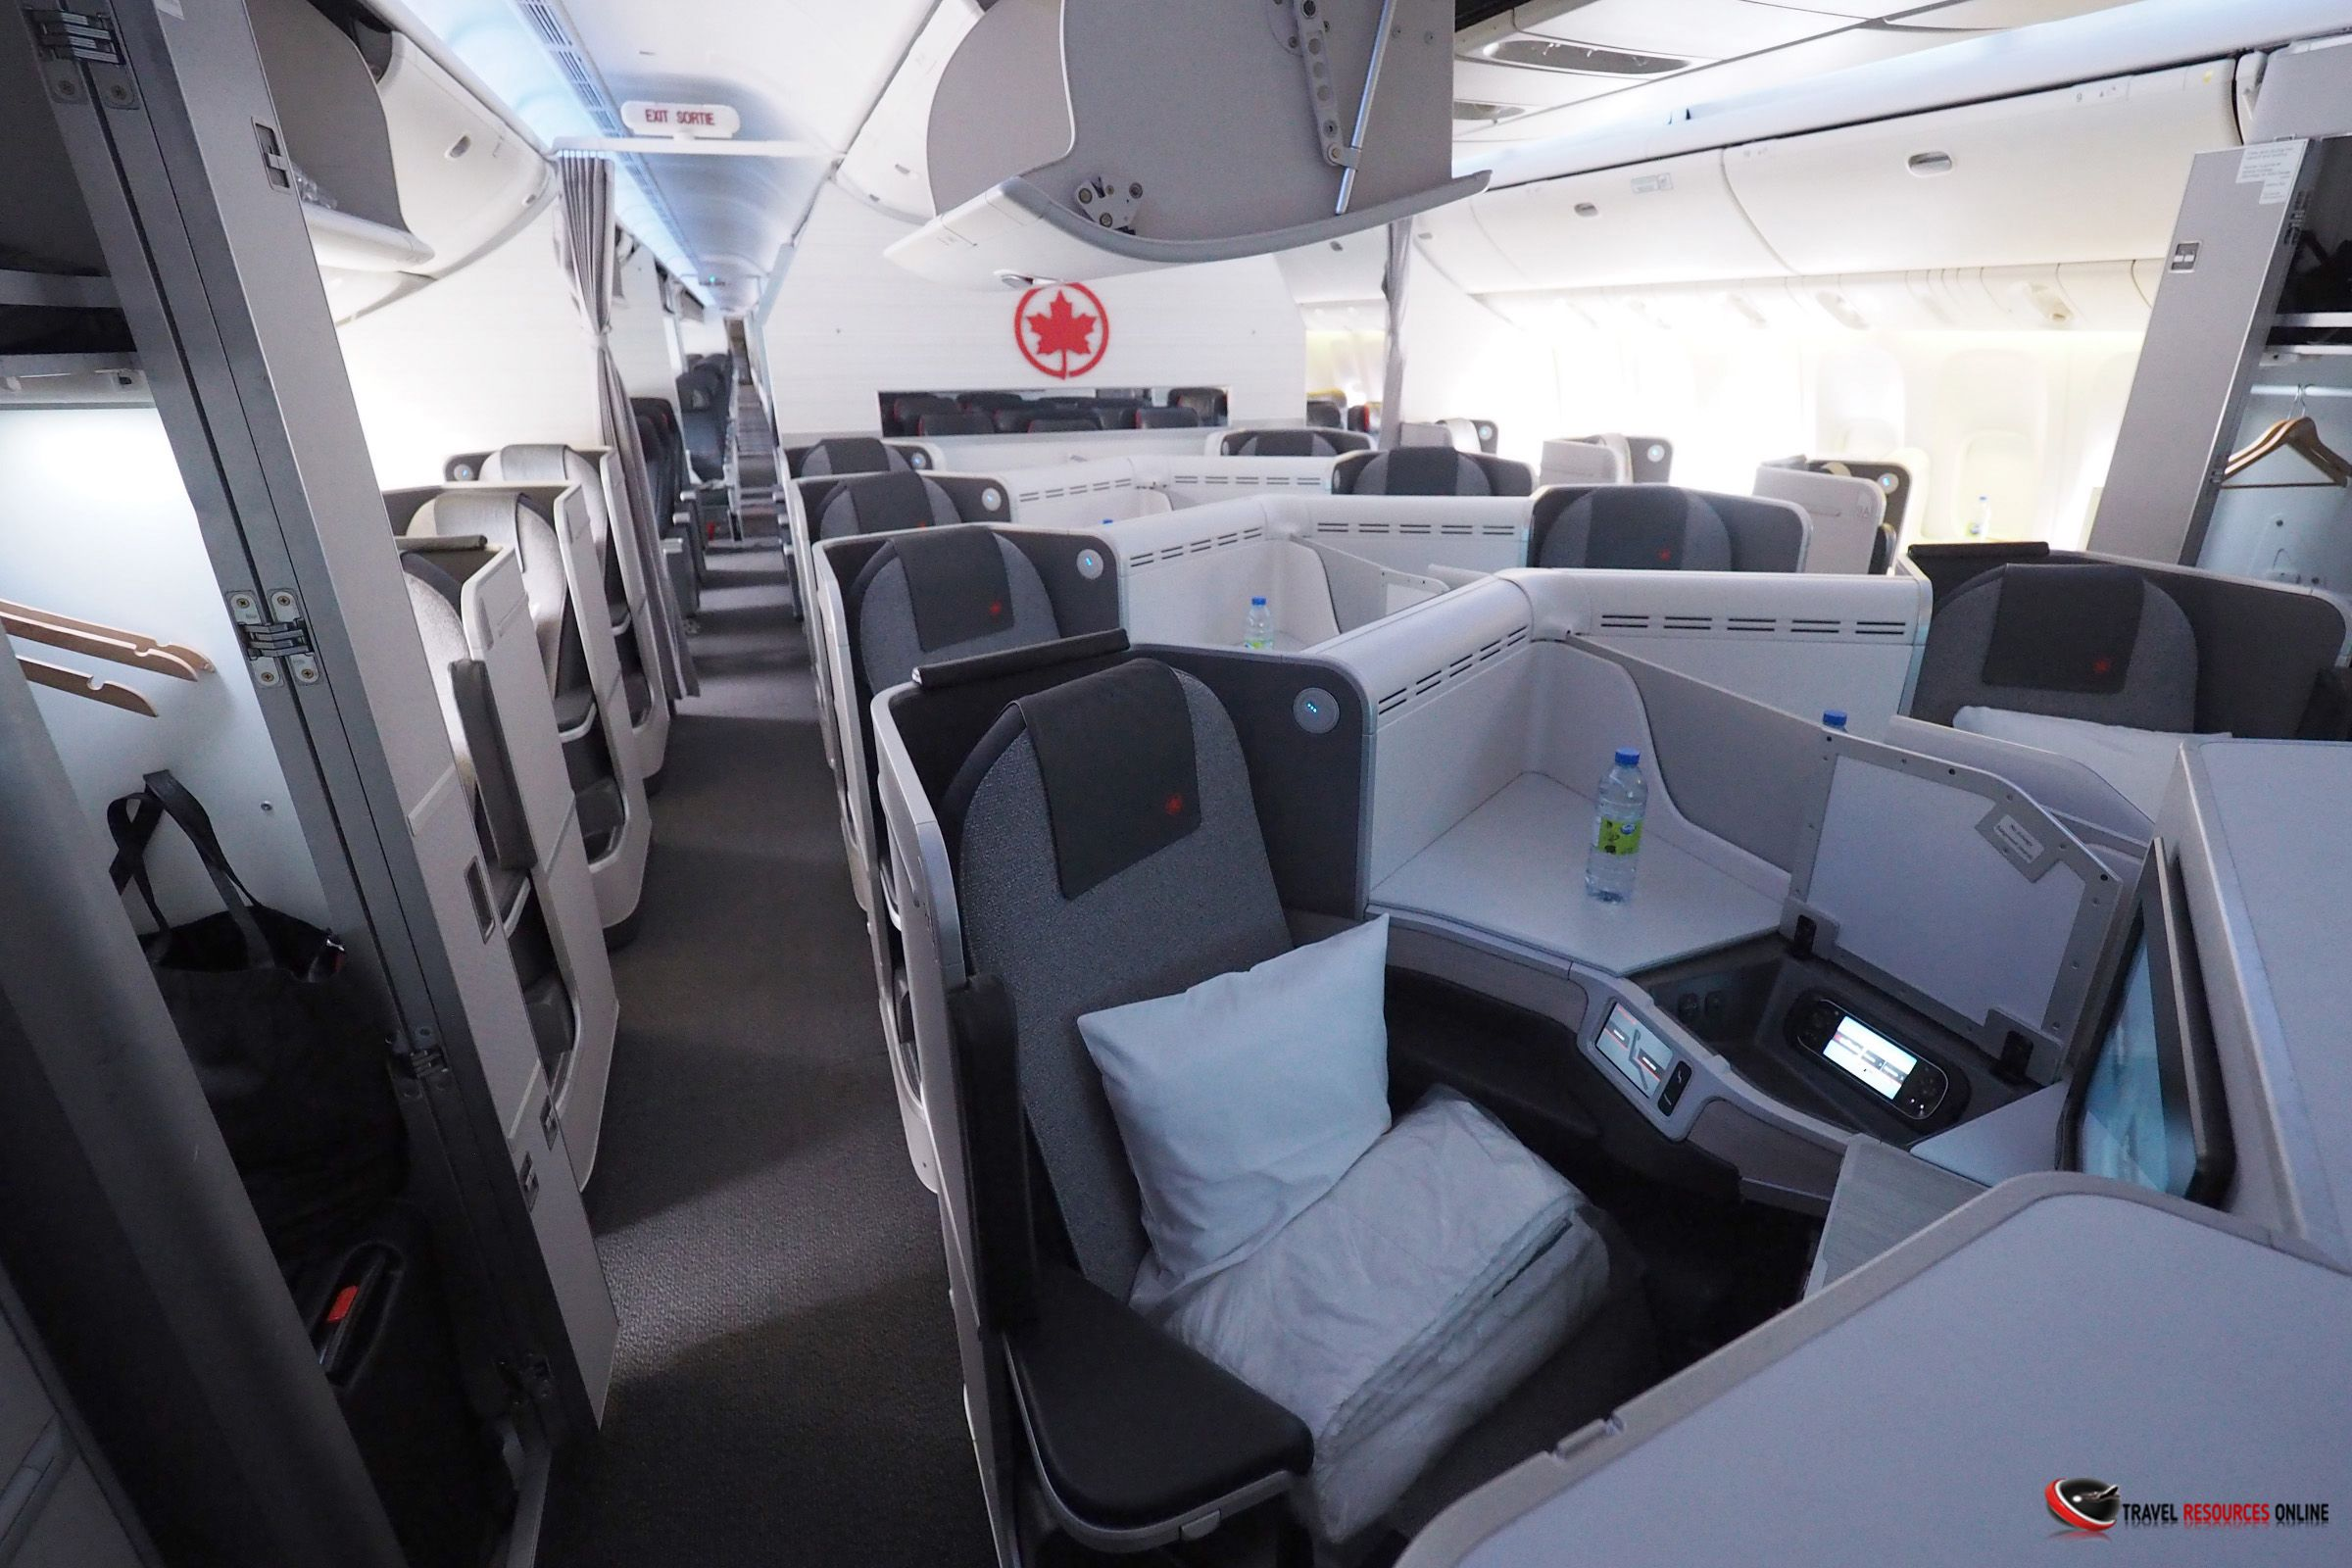 Get Air Canada Reviews to know their facilities Business